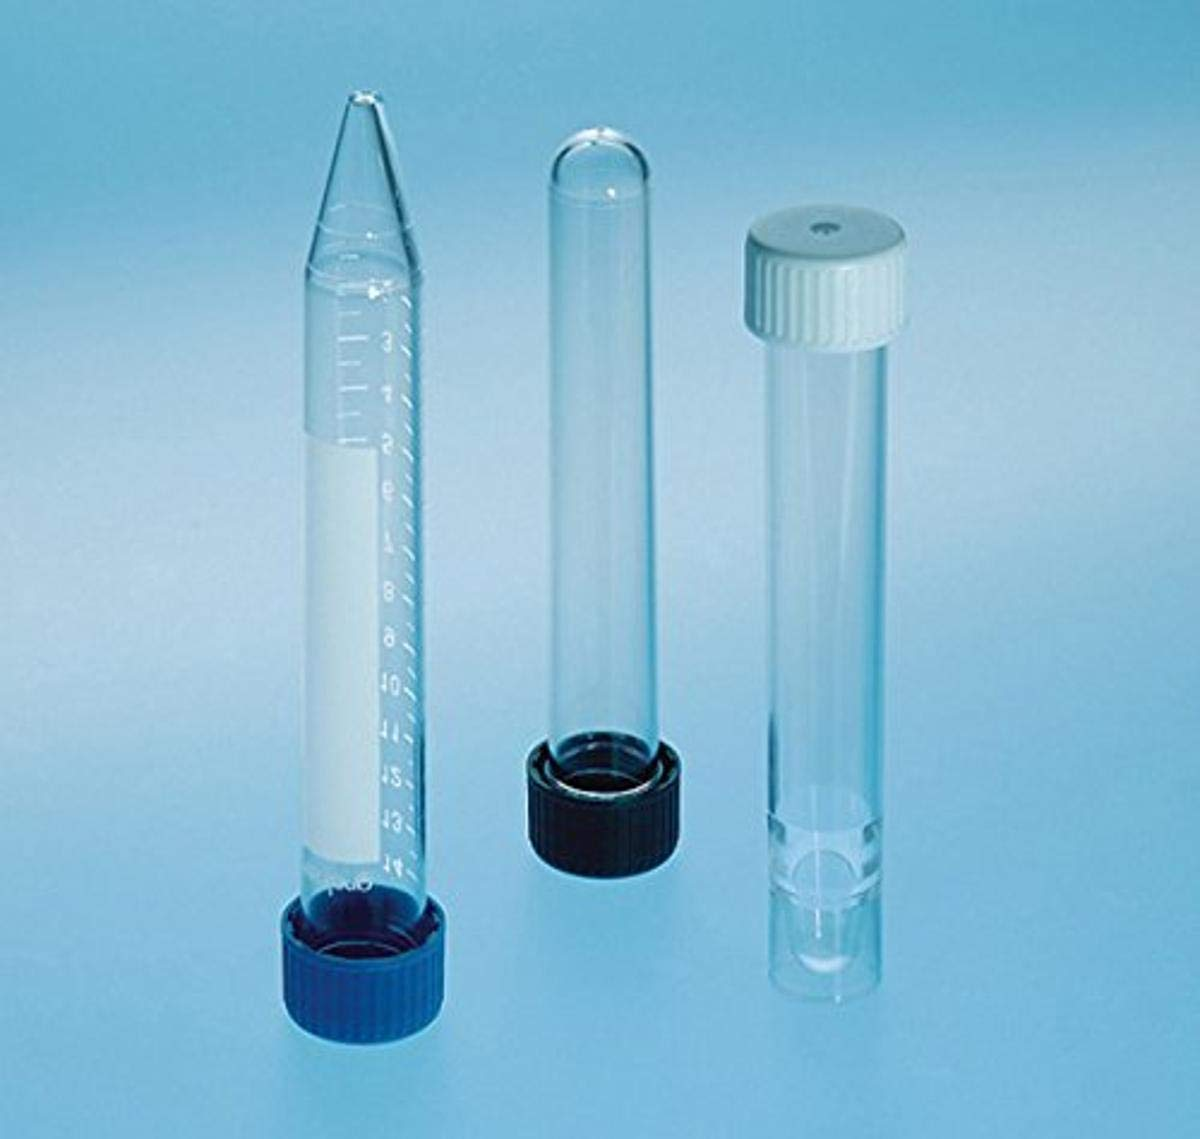 Greiner Bio-One 163270 Test Tube, Round Bottom, White Screw Cap, 16mm Diameter, 100mm Height, 12ml Nominal Volume, Polypropylene (Pack of 900)